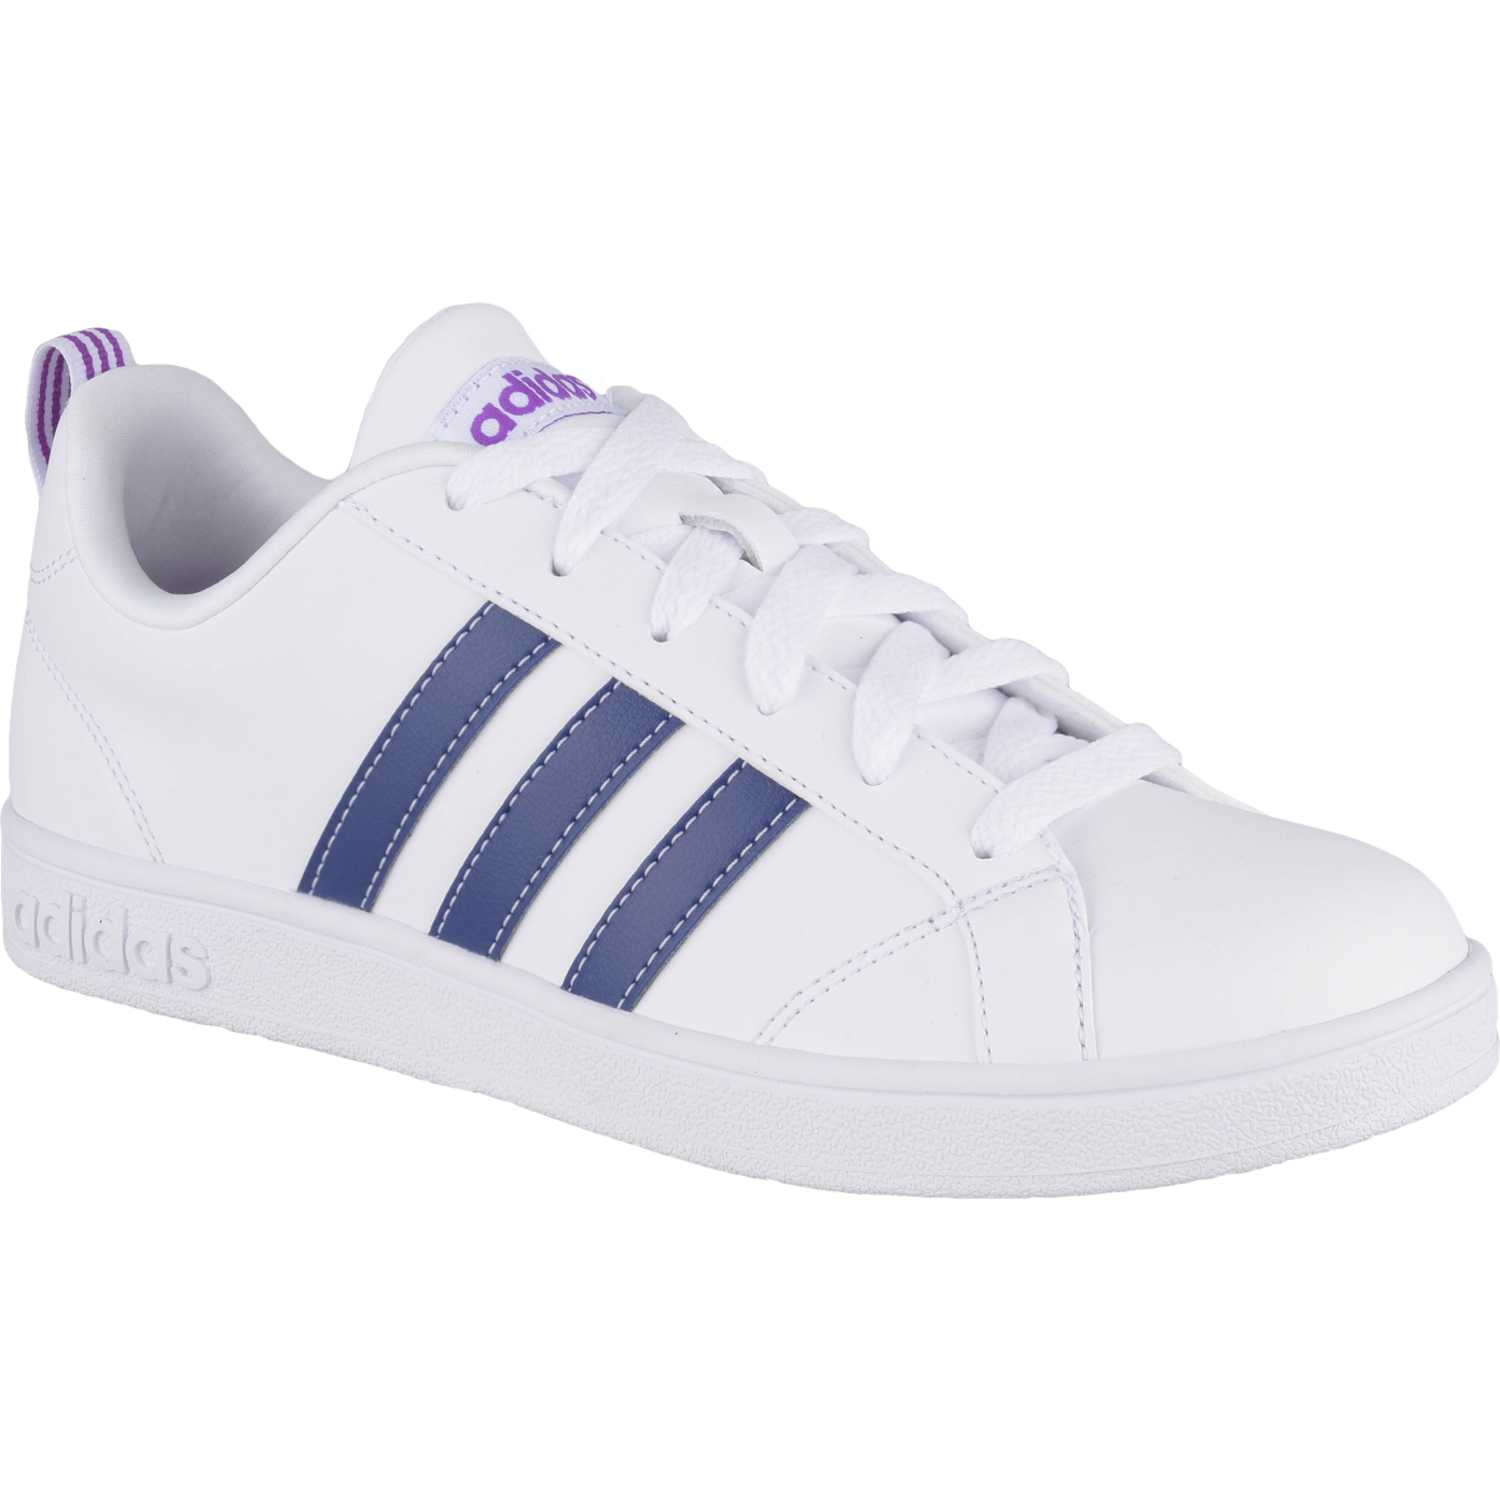 Casual de Mujer adidas NEO Negro blanco vs advantage